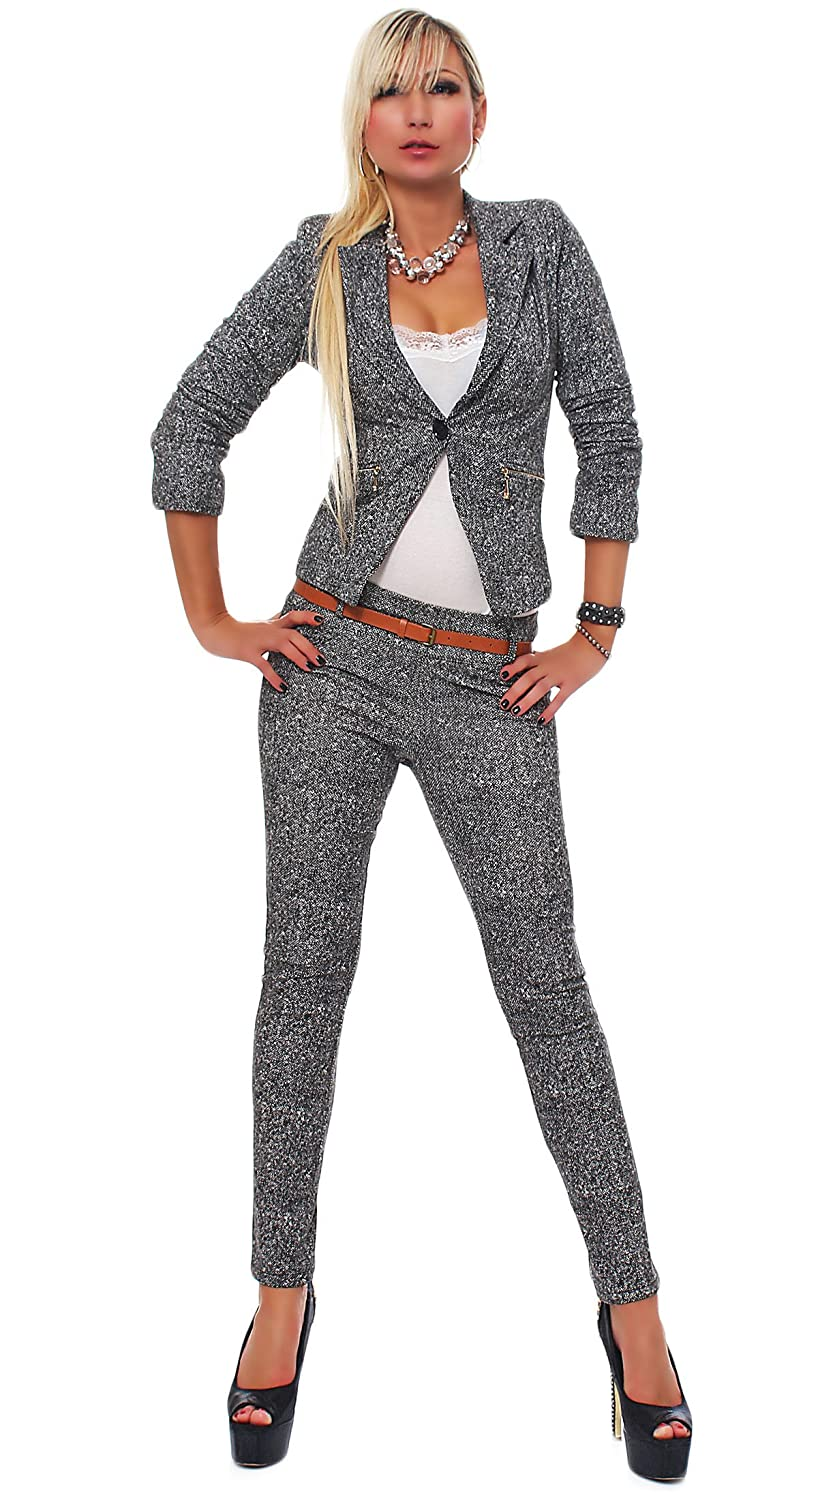 4417 Fashion4Young Damen Business Anzug Hosenanzug Hose und Blazer ...